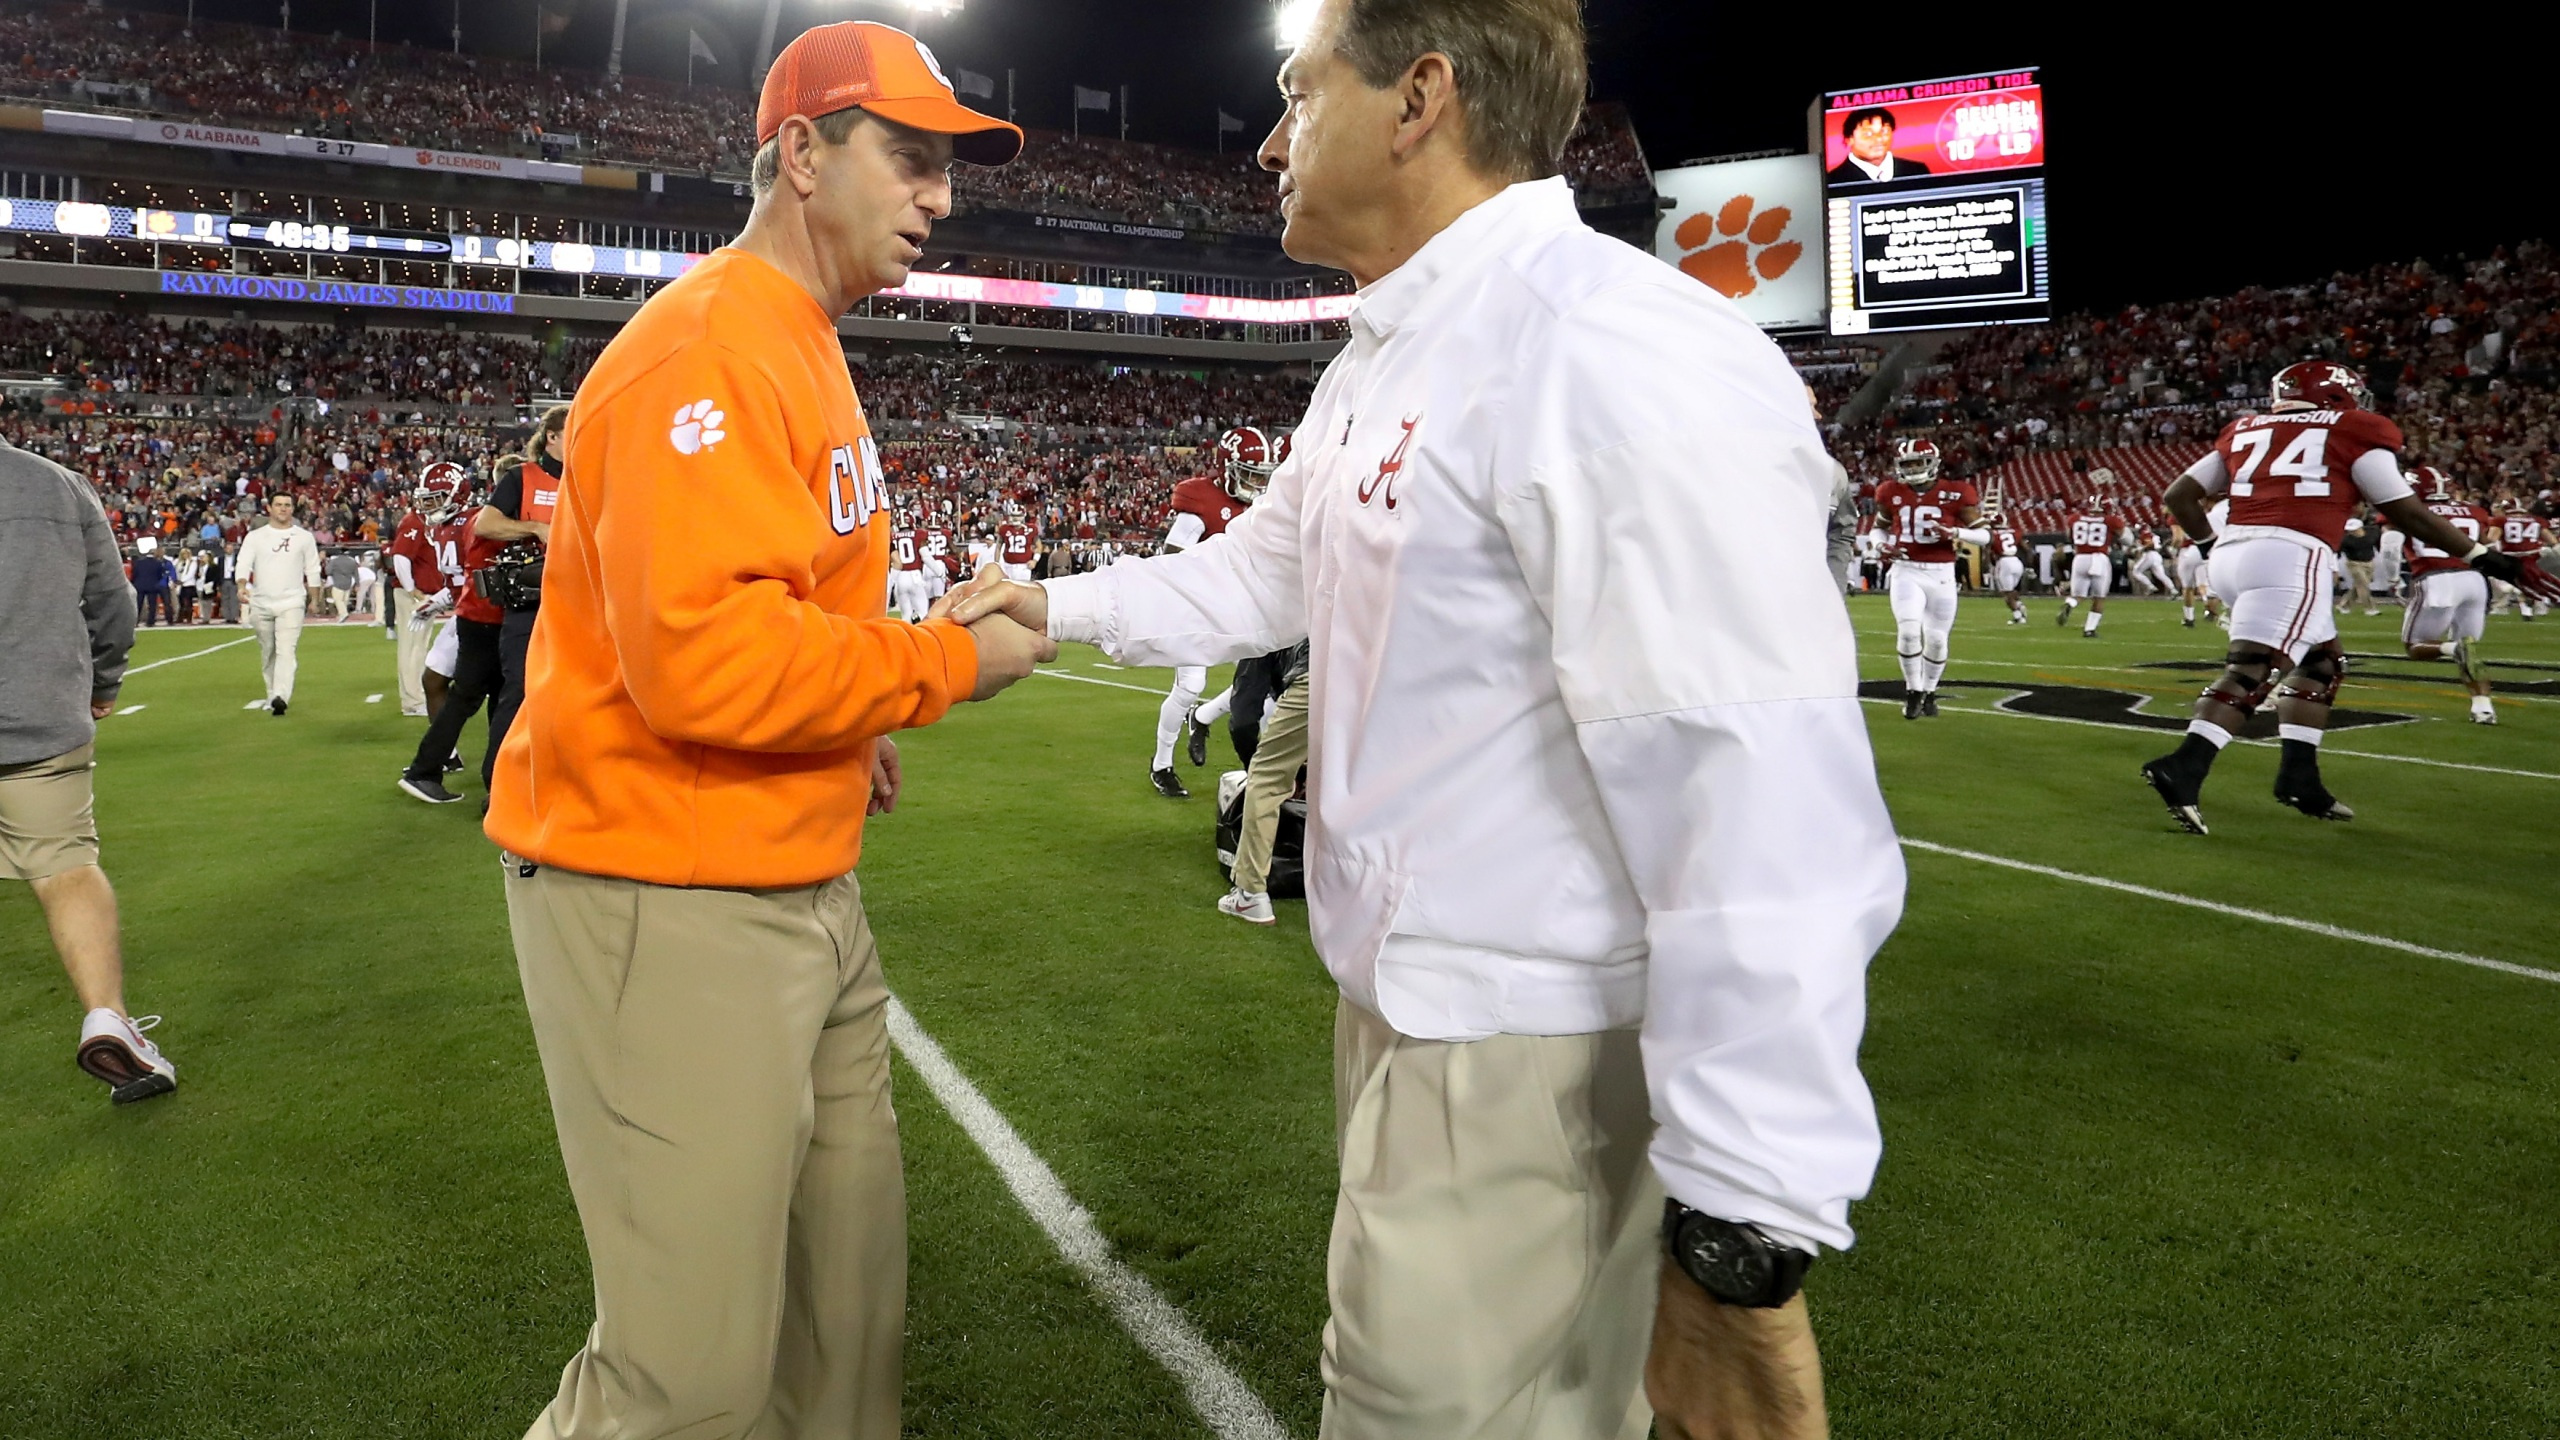 Dabo Swinney Nick Saban